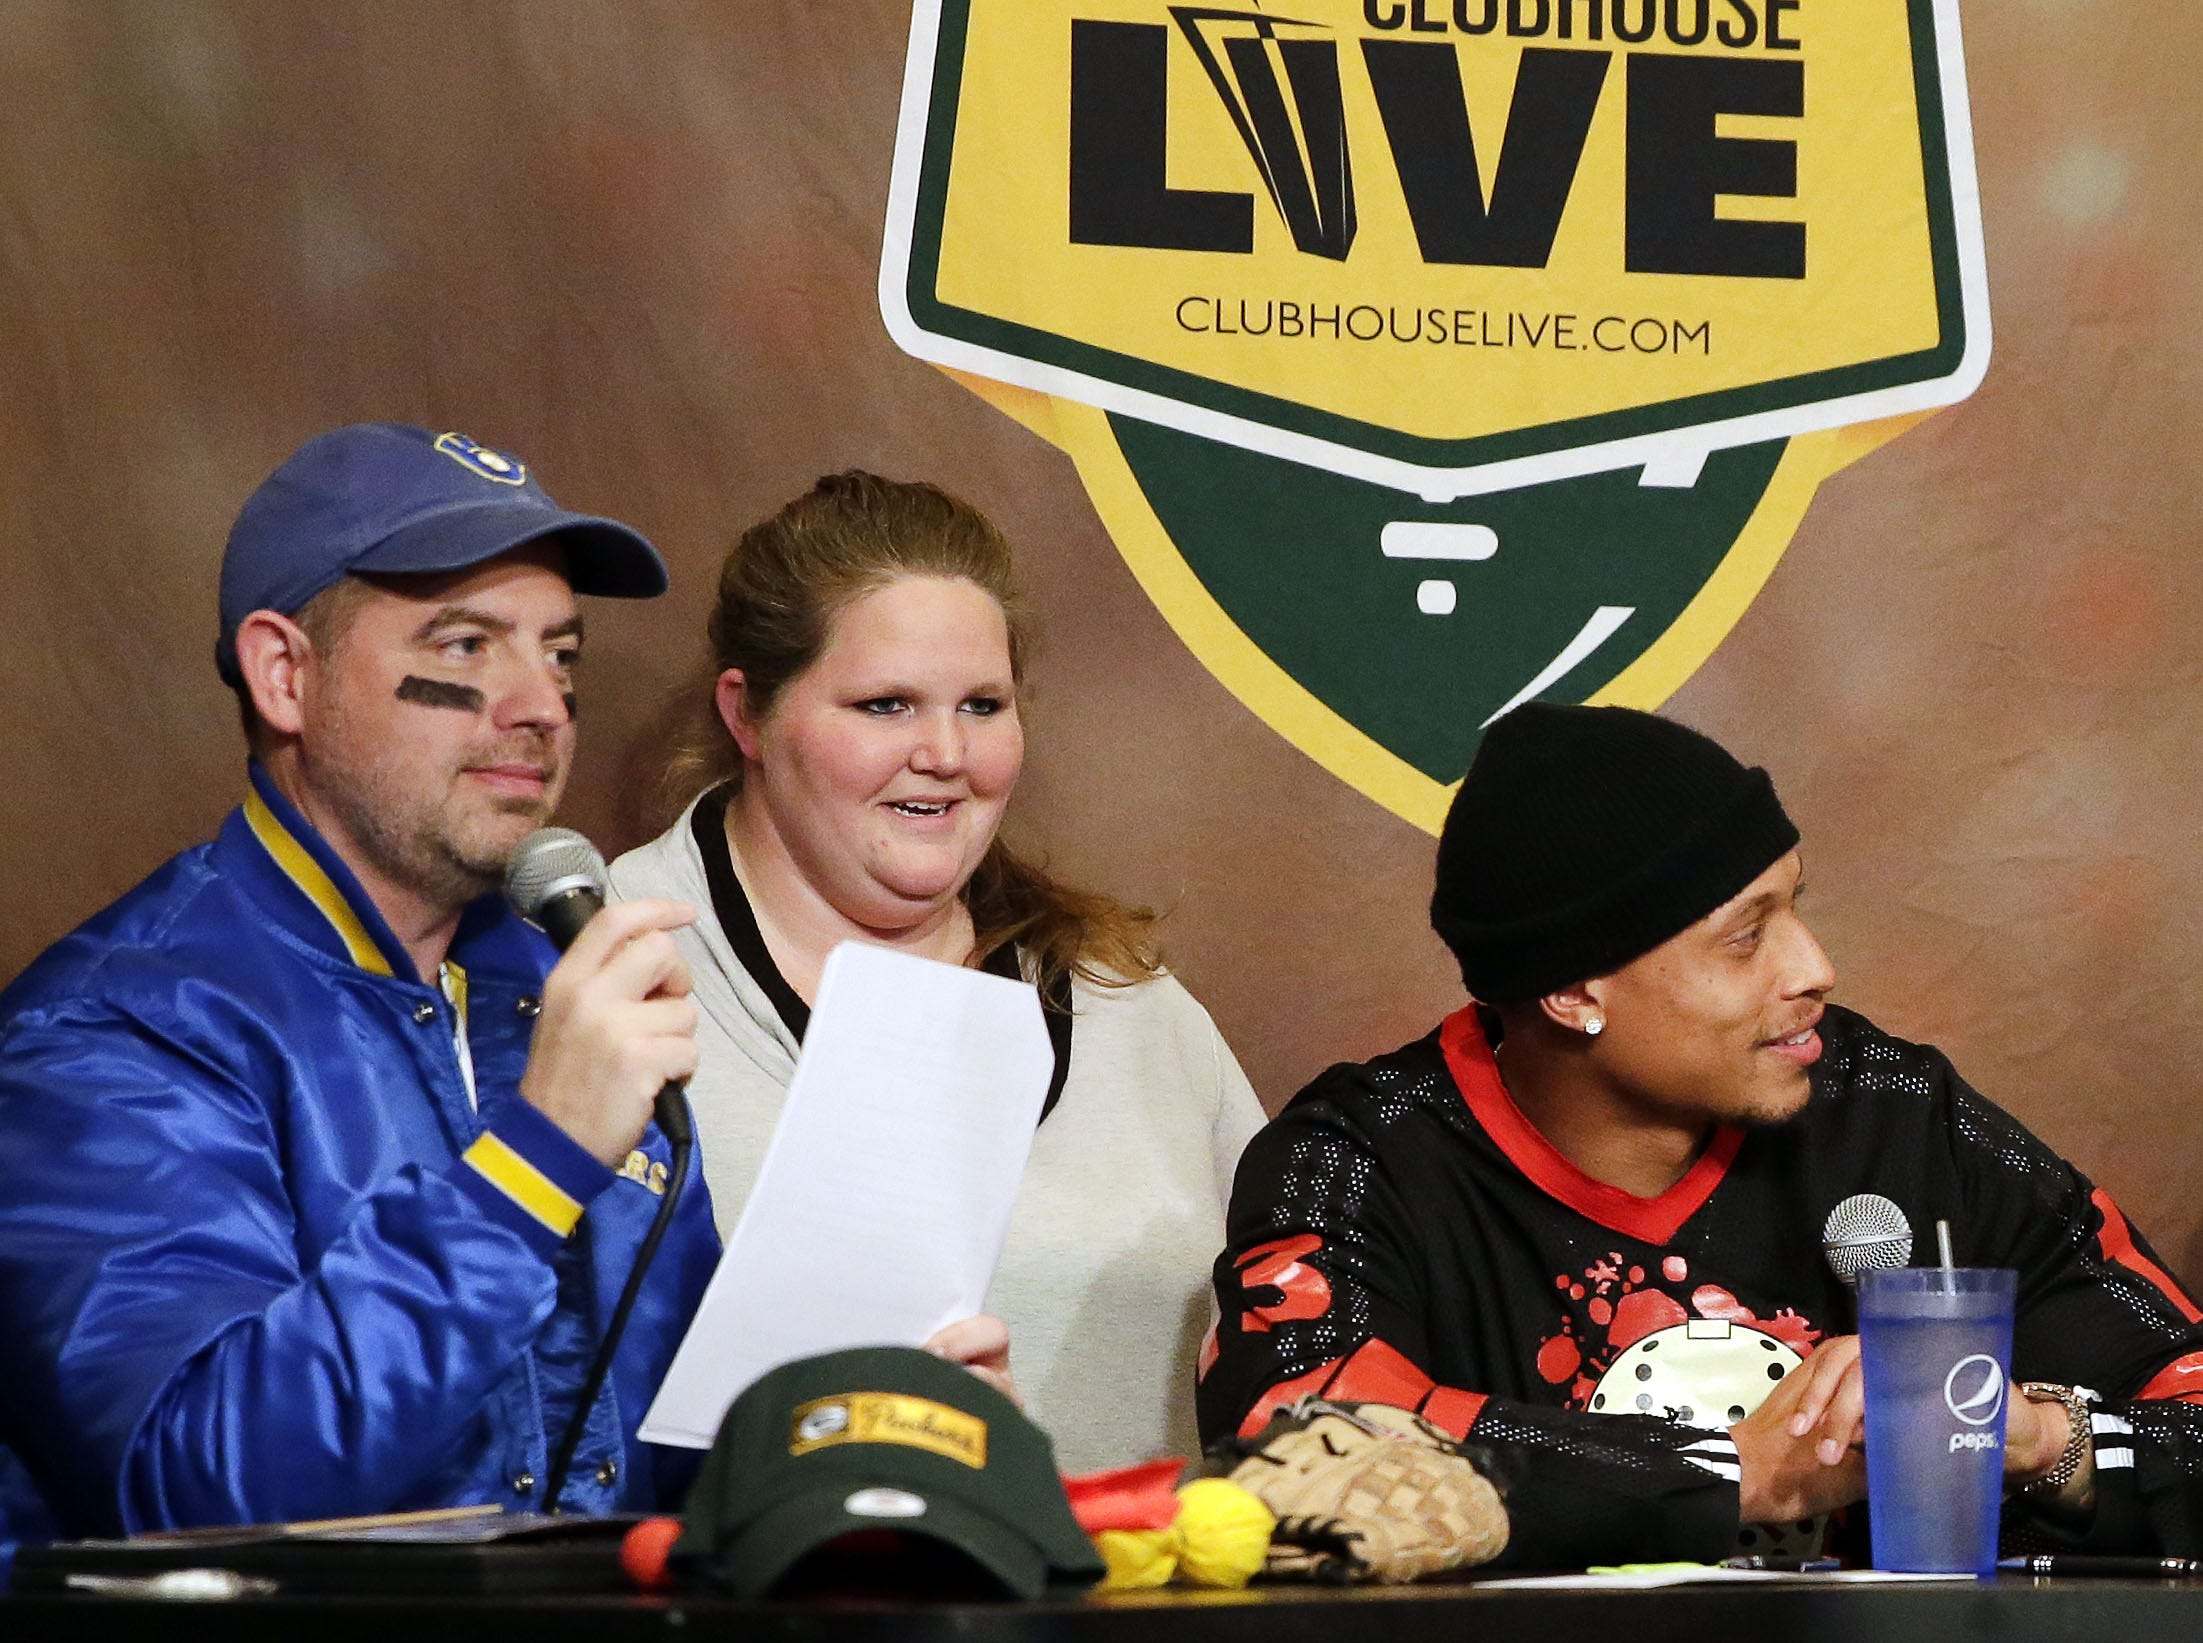 Clubhouse Live co-hosts Brett Christopherson, Ricardo Argeullo, Margaret Naczek and Green Bay Packer Josh Jones welcome punter JK Scott on the Halloween edition Monday, October 29, 2018, at the Red Lion Hotel Paper Valley in Appleton, Wis. Ron Page/USA TODAY NETWORK-Wisconsin